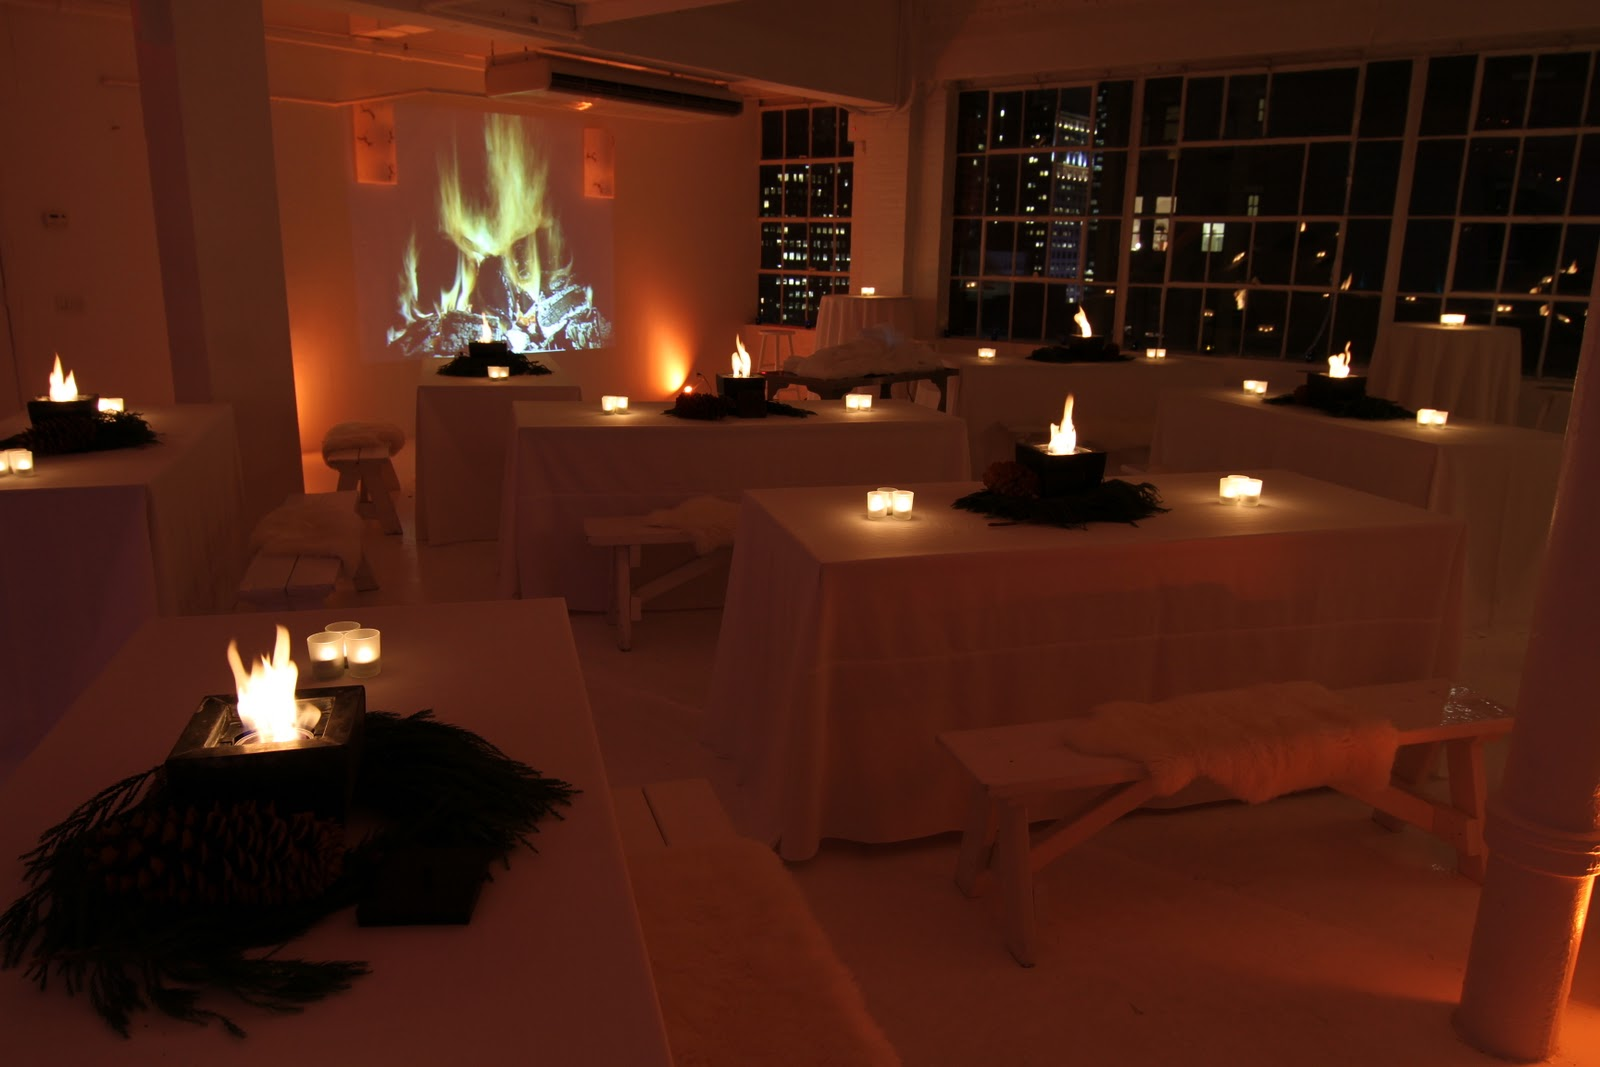 Nyc knotties unique wedding venues winter lounge for Unusual wedding venues nyc